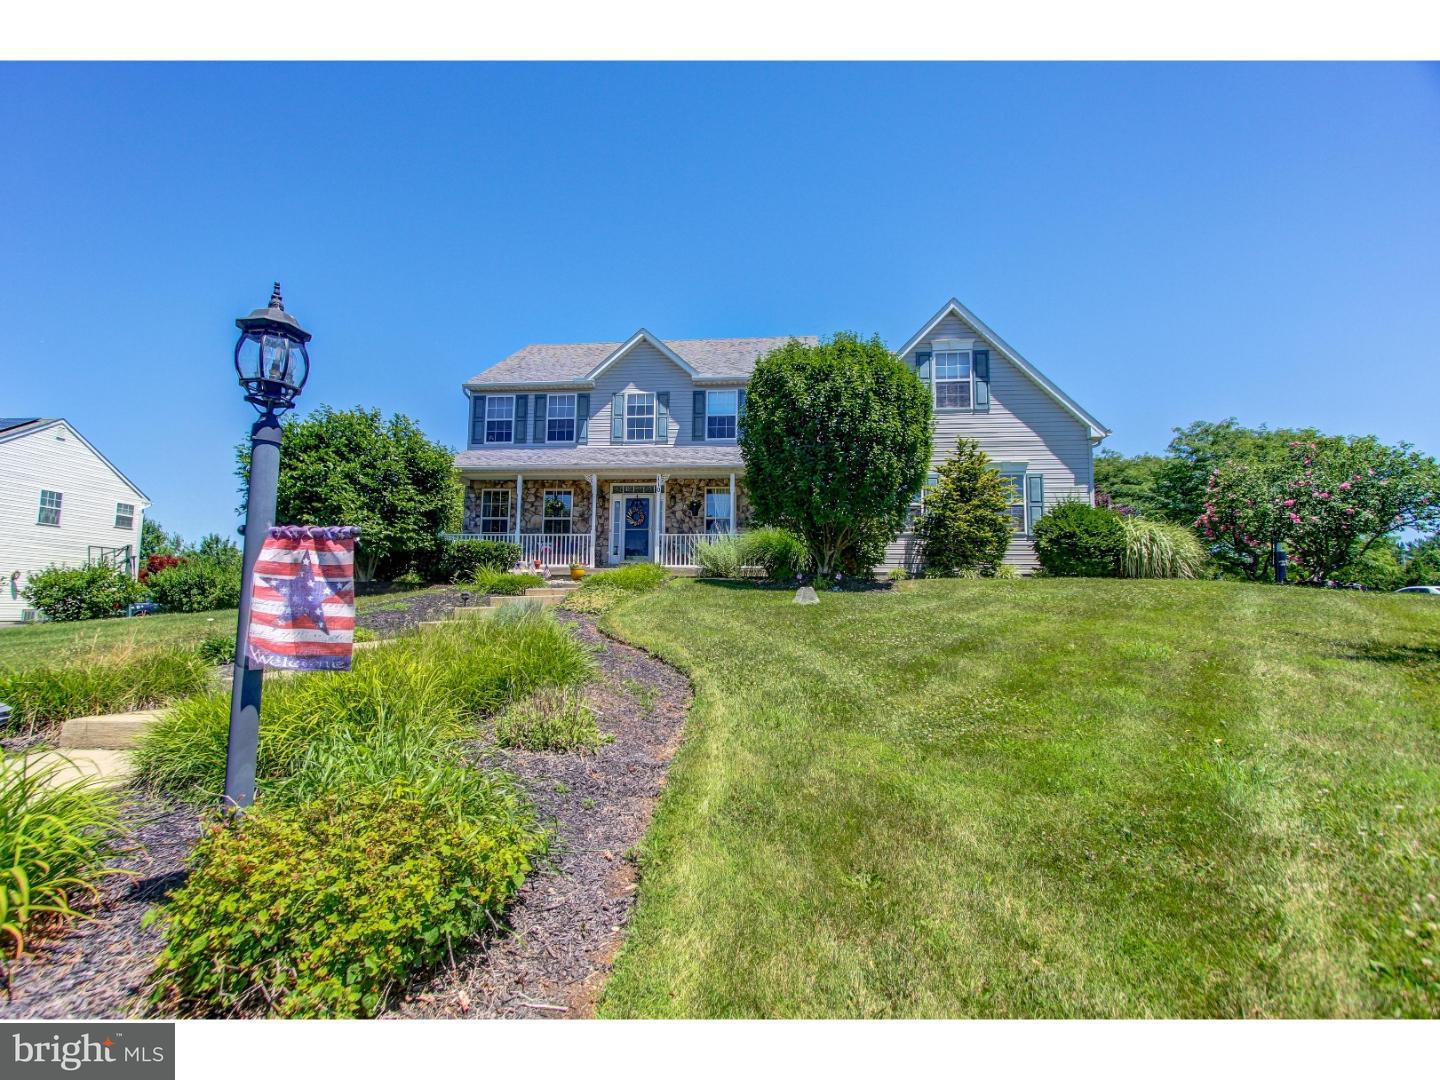 110 CRESCENT DR, NEW BRITAIN - Listed at $565,000, NEW BRITAIN